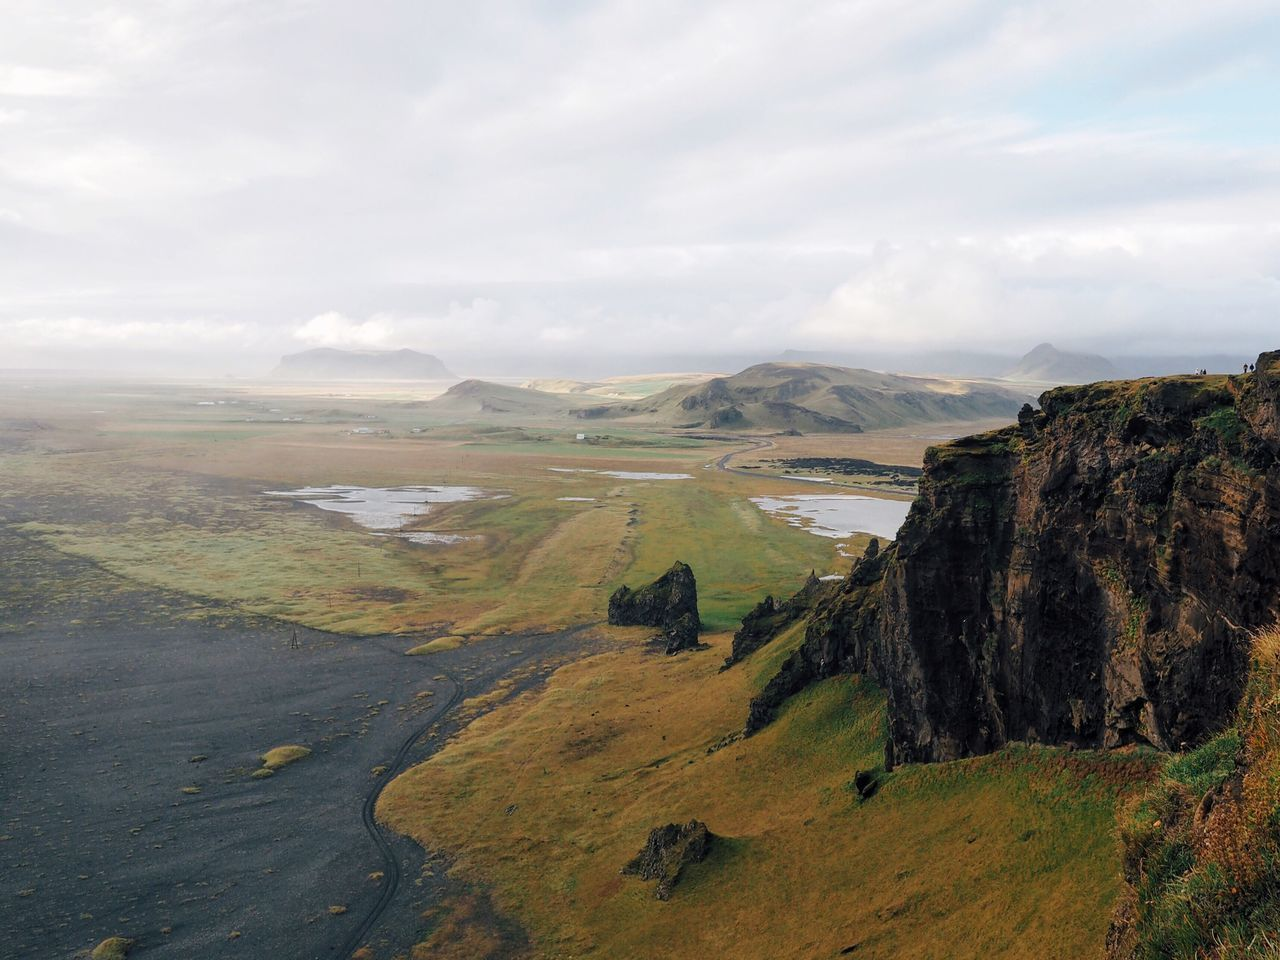 Landscape Nature Beauty In Nature Scenics Outdoors Mountain Tranquil Scene Cloud - Sky Finding New Frontiers in Iceland